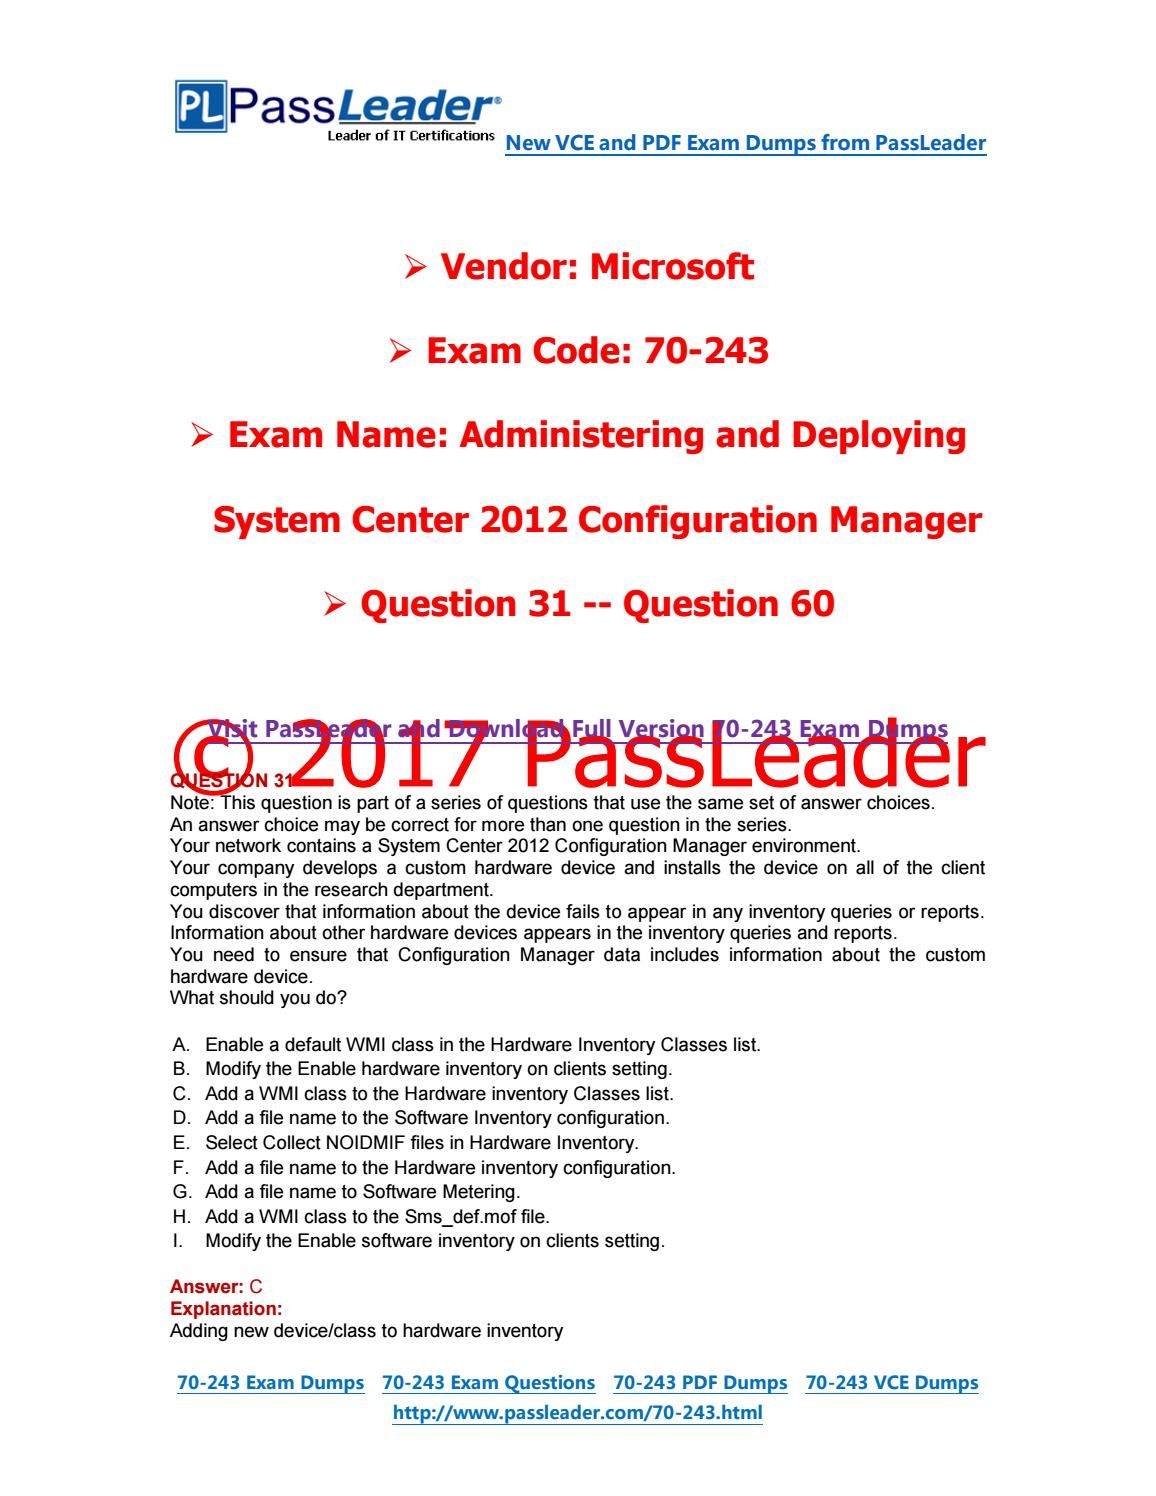 2017 Passleader 70 243 Dumps With Vce And Pdf Question 31